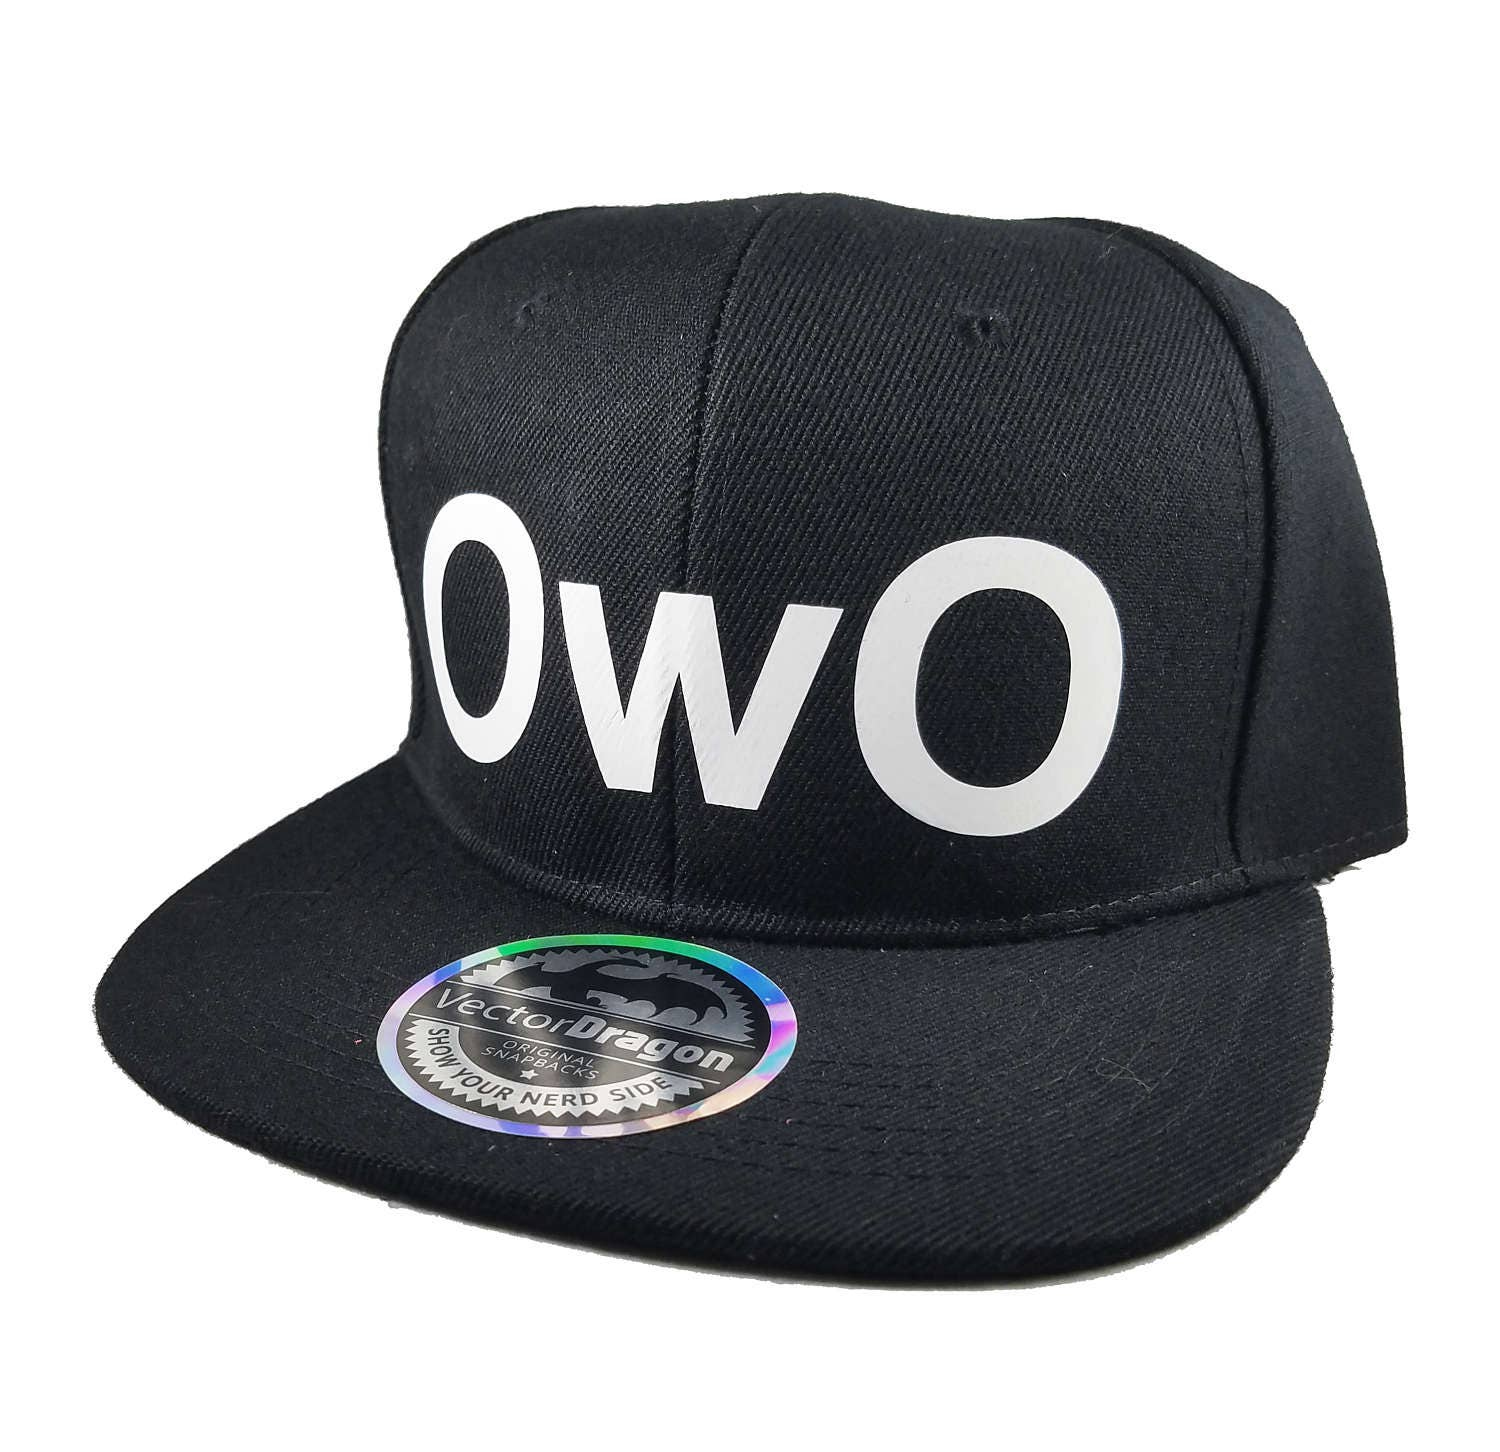 Owo What S This Face Snapback Trucker Cap Hat